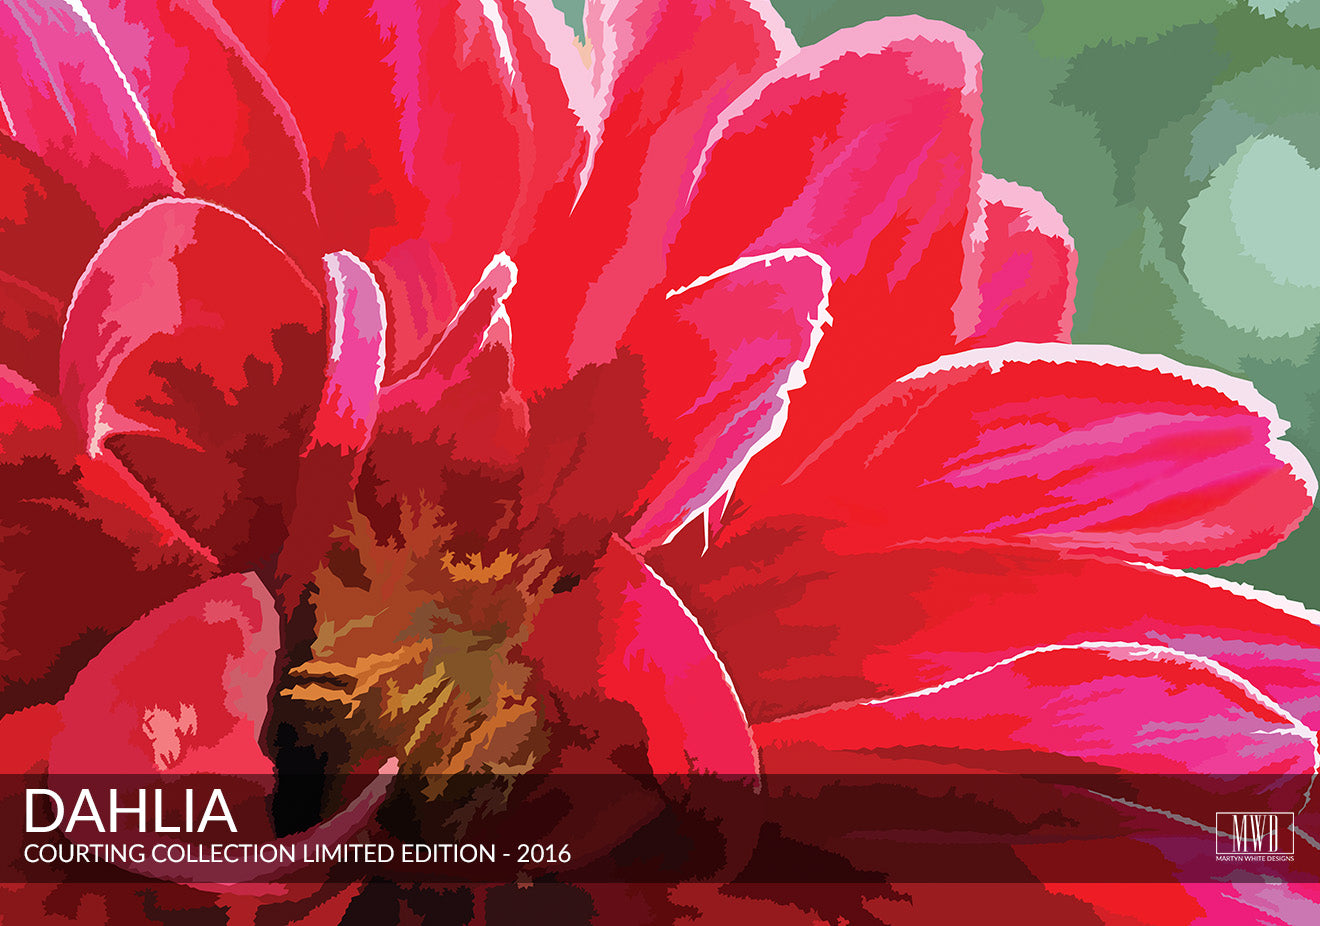 Dahlia Art Print, Courting Collection Martyn White Designs